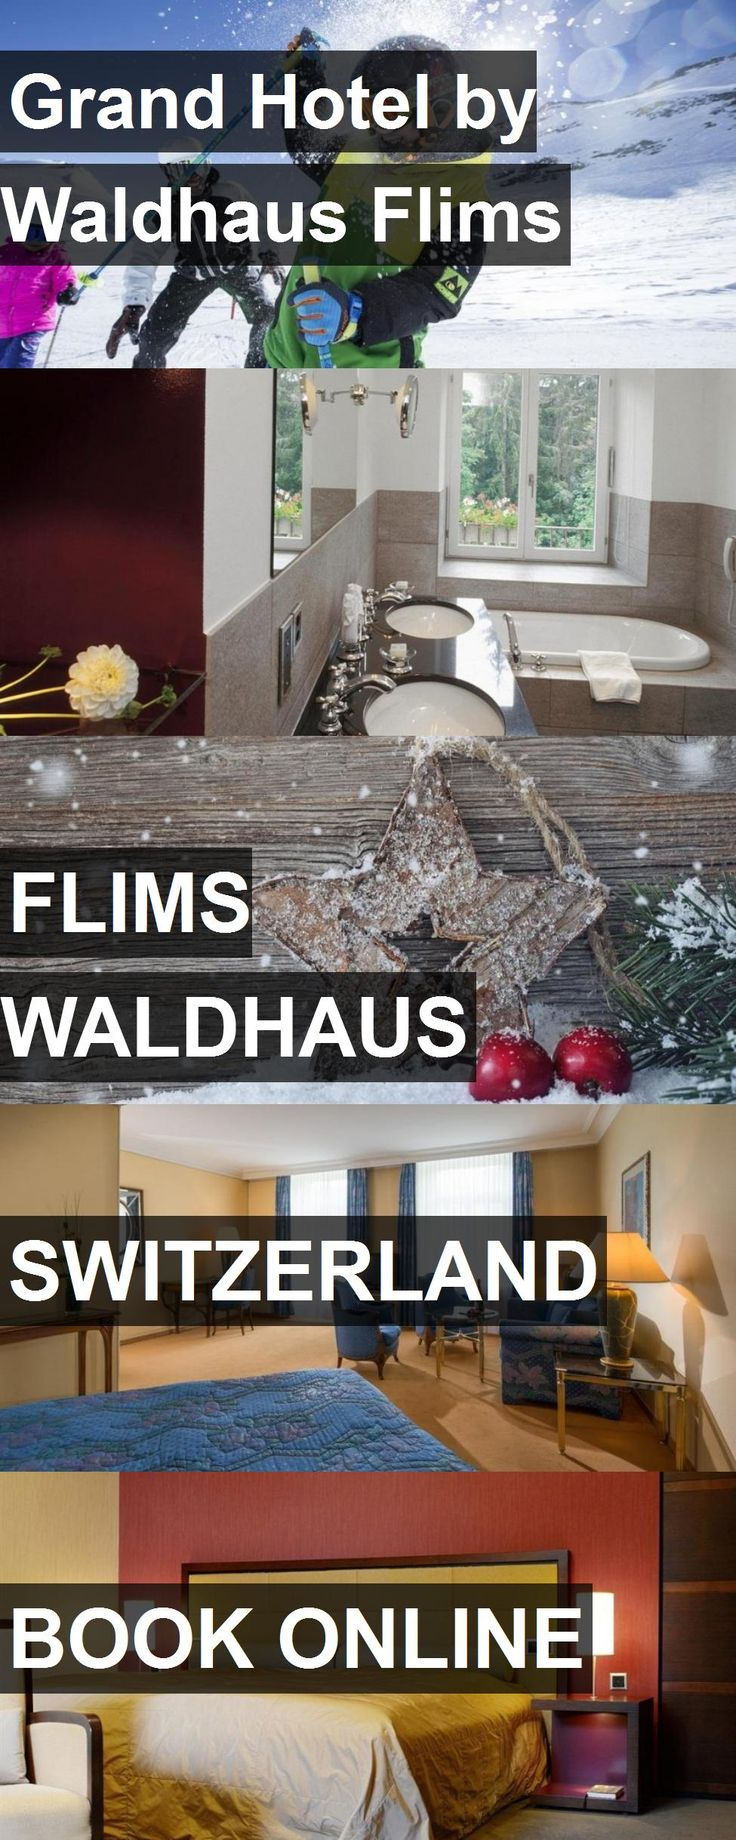 Grand Hotel by Waldhaus Flims in Flims Waldhaus, Switzerland. For more information, photos, reviews and best prices please follow the link. #Switzerland #FlimsWaldhaus #travel #vacation #hotel